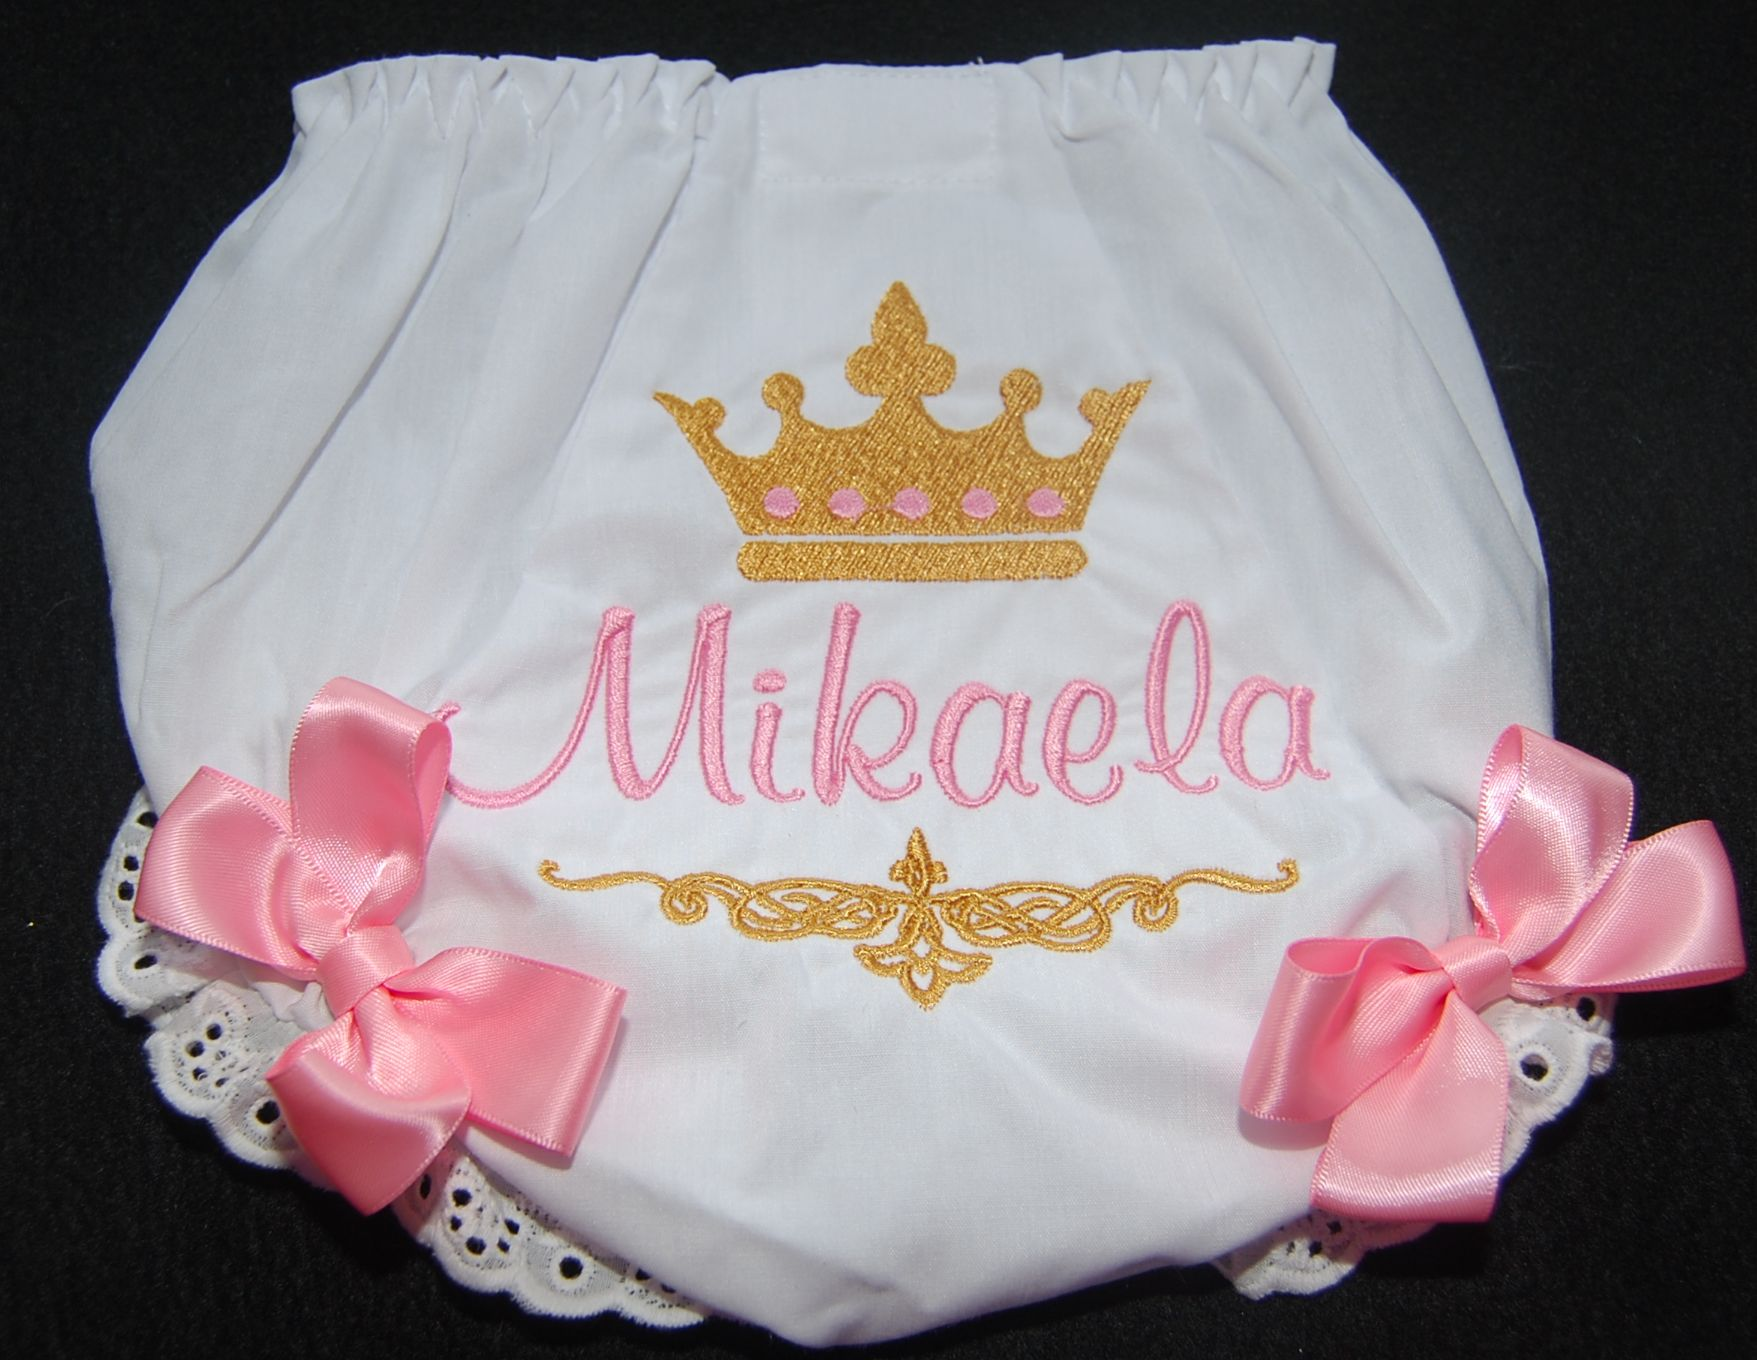 pink and gold birthday outfit princess birthday tutu outfit baby girl birthday dress tutu dress pink and gold 1st birthday outfit with bloomers and bow